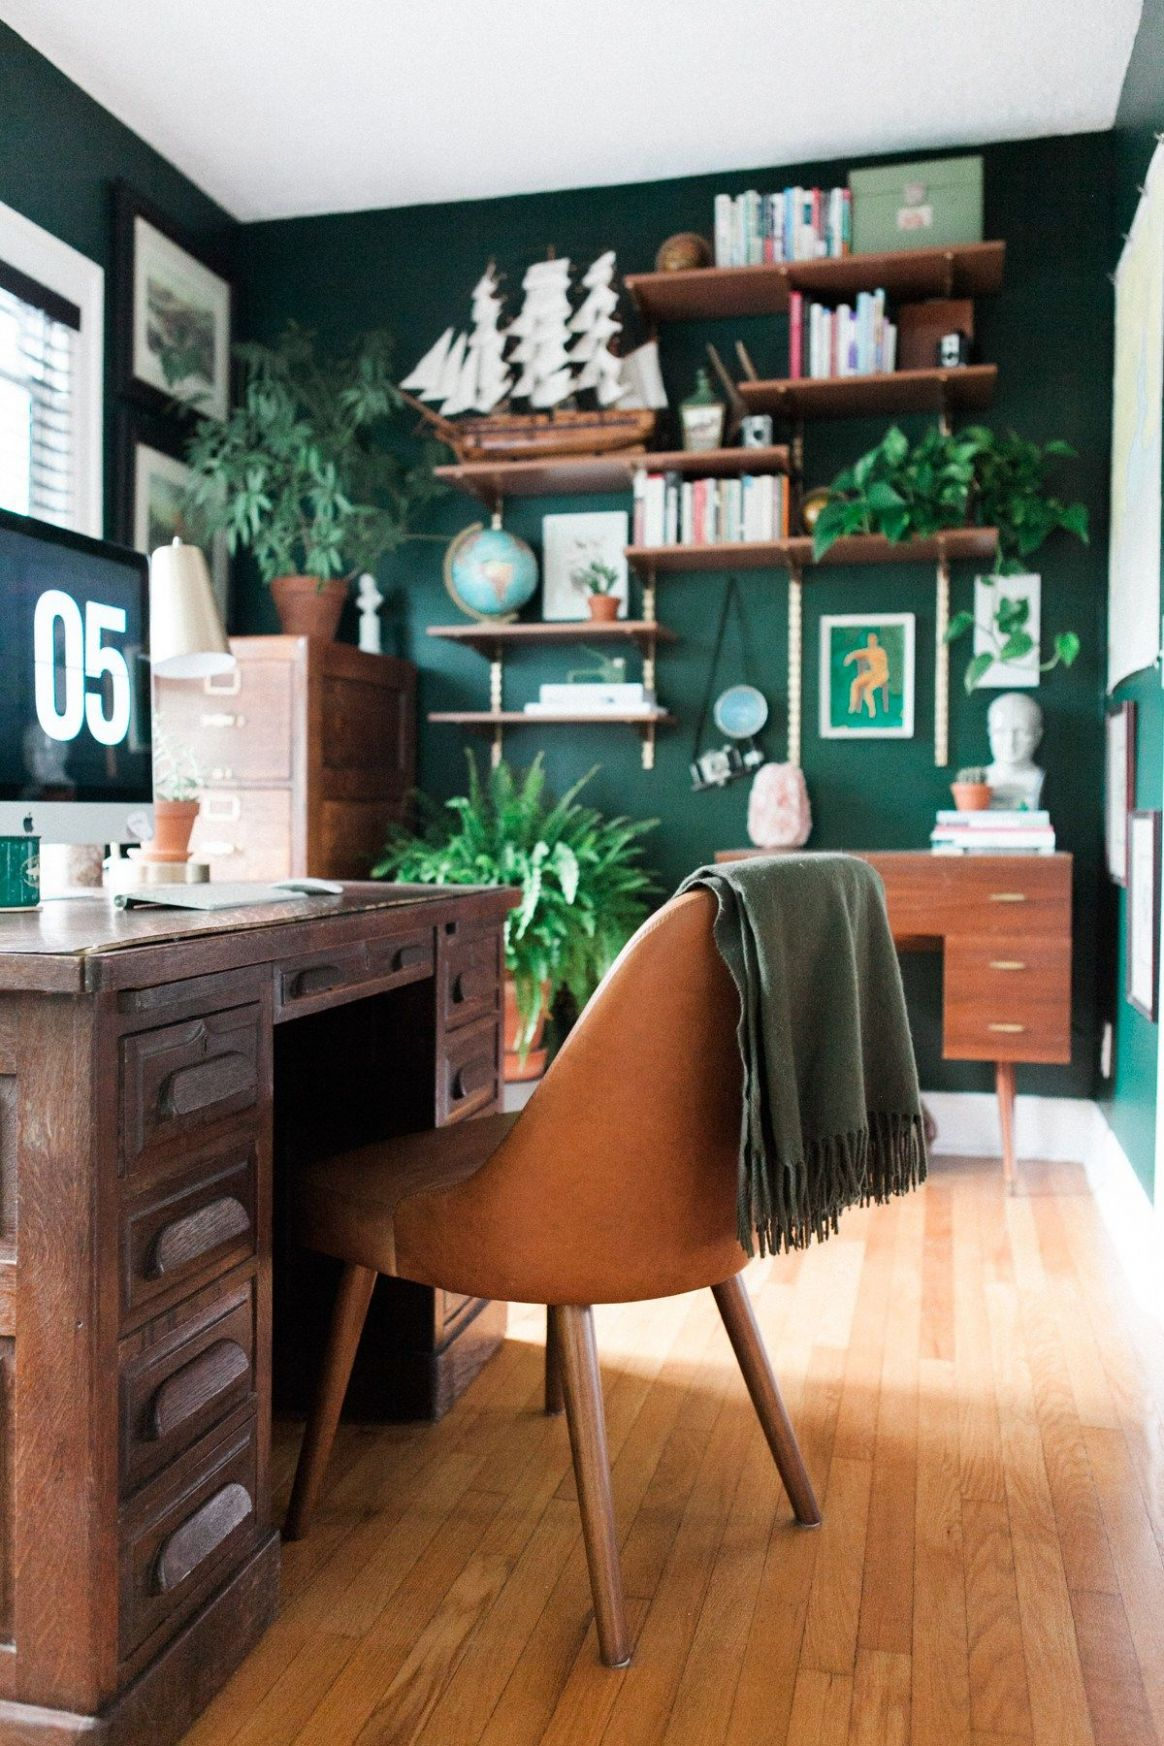 Eclectic Home Tour・Summer 8 (With images) | Eclectic home ..